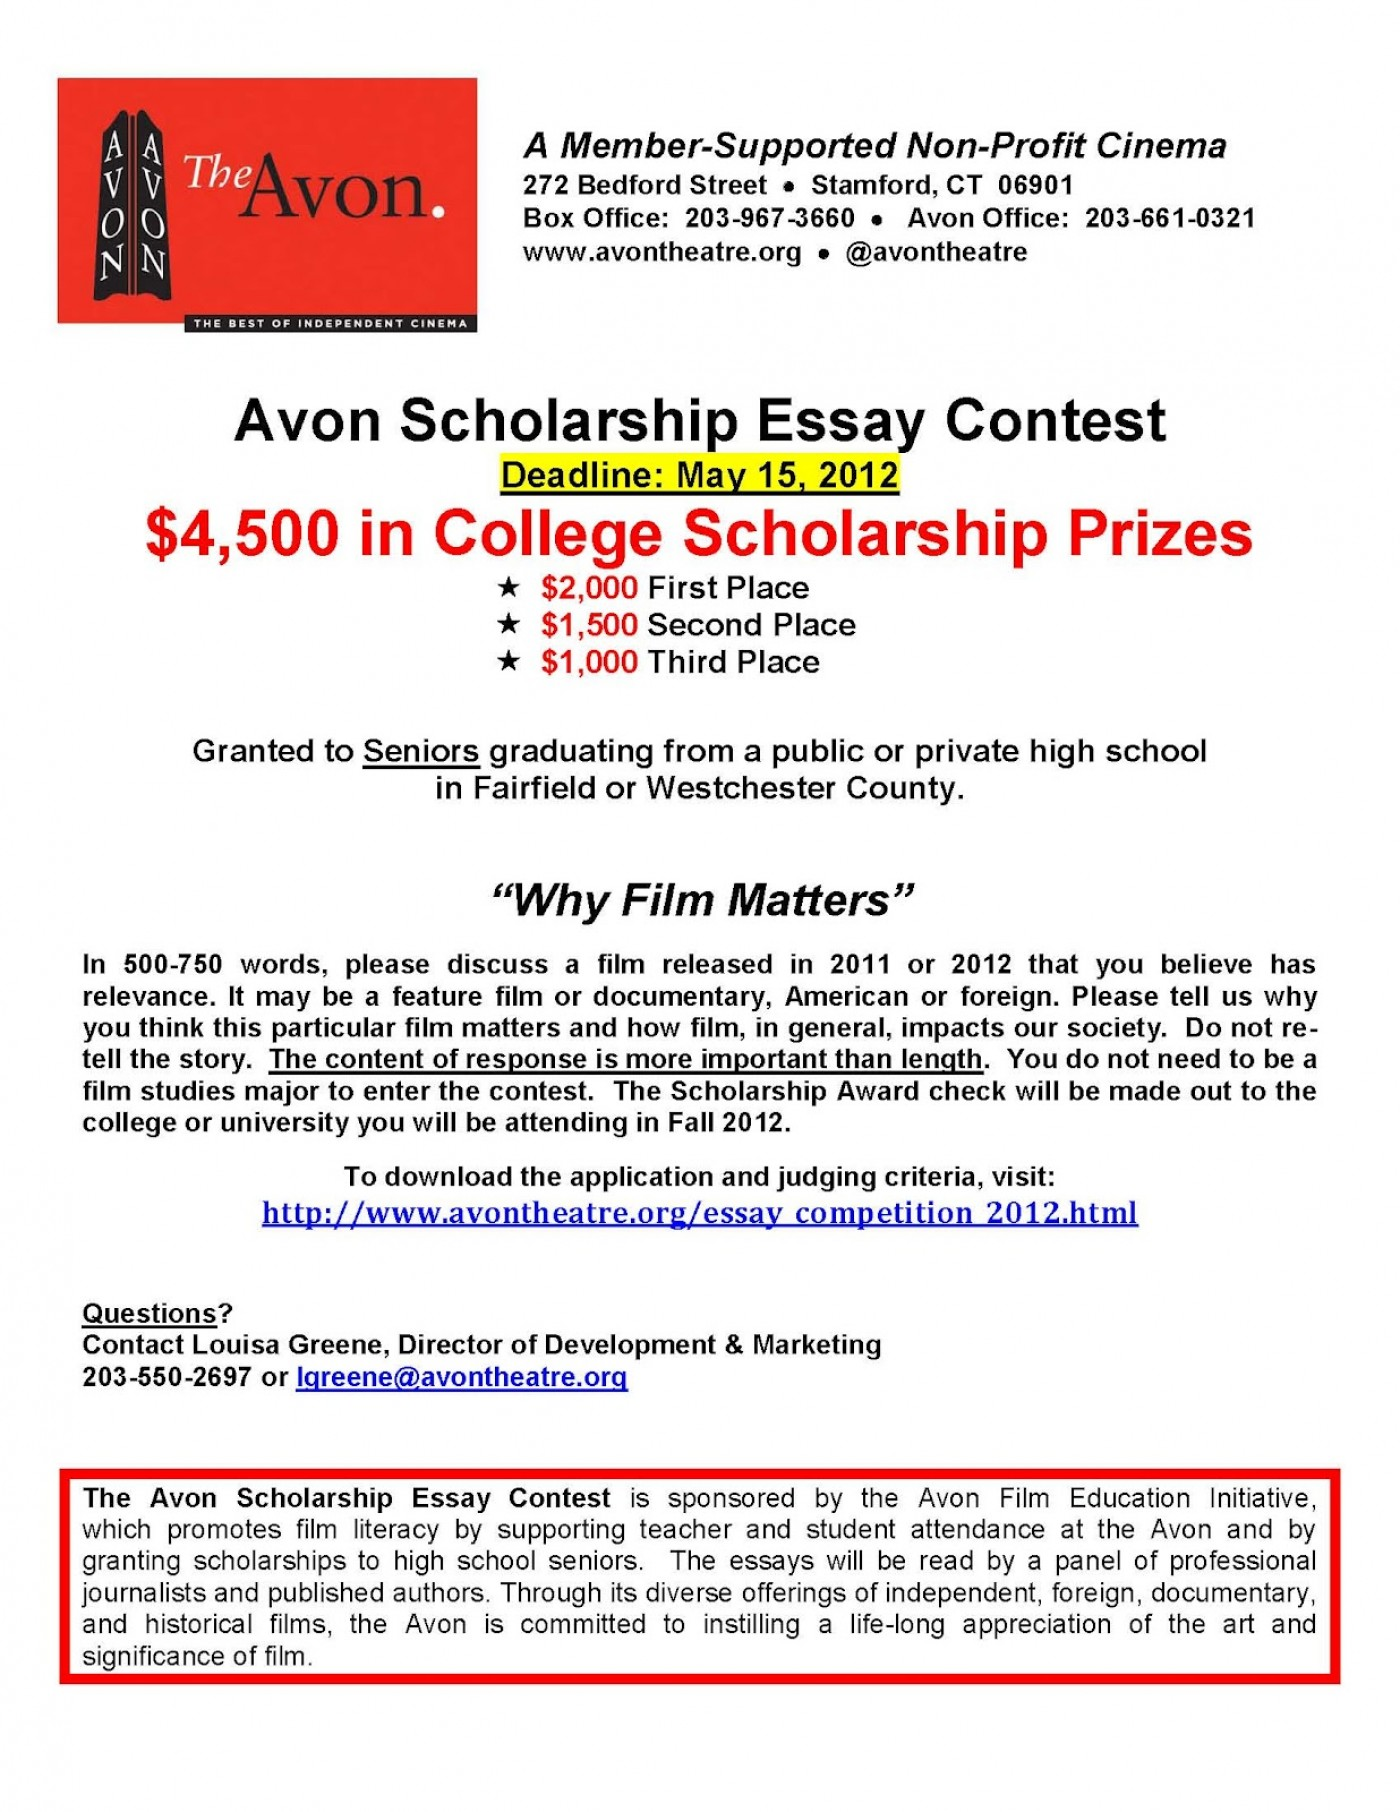 002 No Essay Collegeip Prowler Freeips For High School Seniors Avonscholarshipessaycontest2012 In Texas California Class Of Short Example Wondrous Scholarship Scholarships 2019 1400